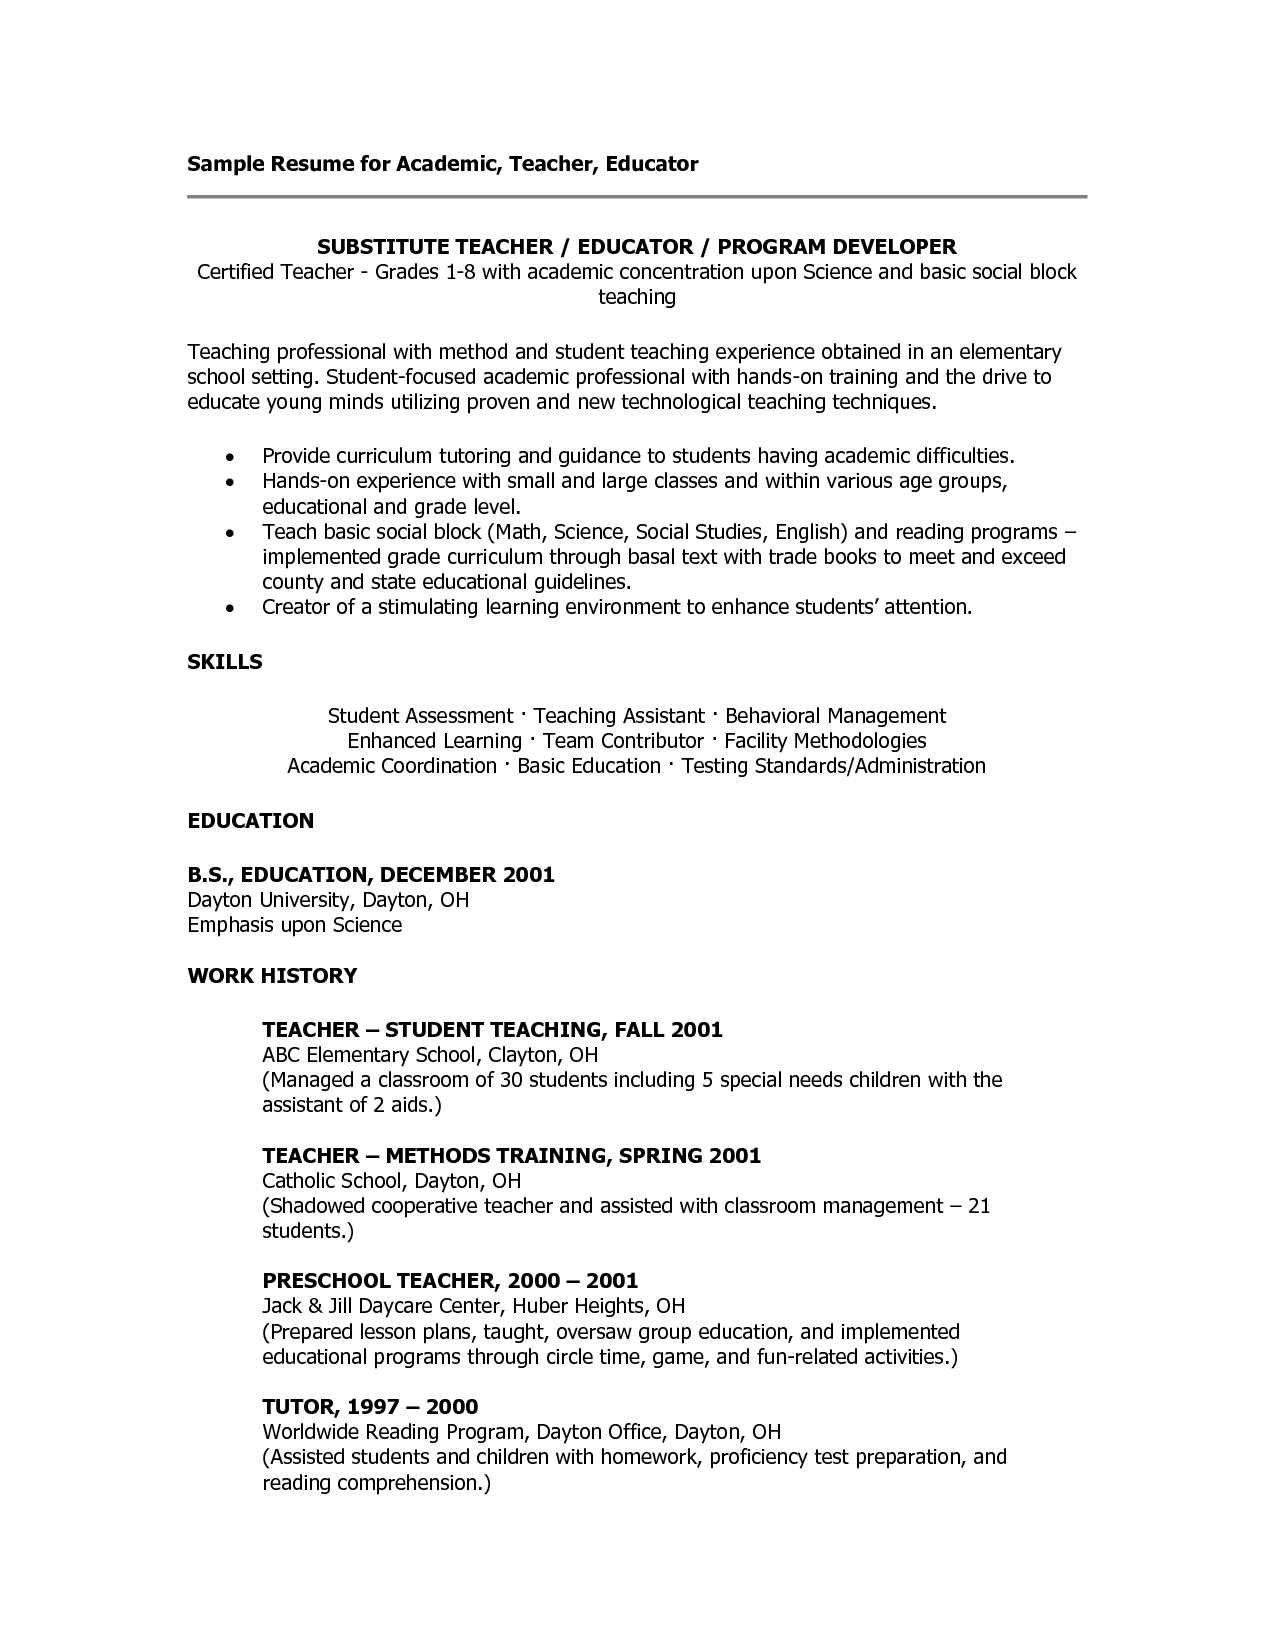 Teacher Resume Samples Sample Teacher Resumes  Substitute Teacher Resume  Fcs